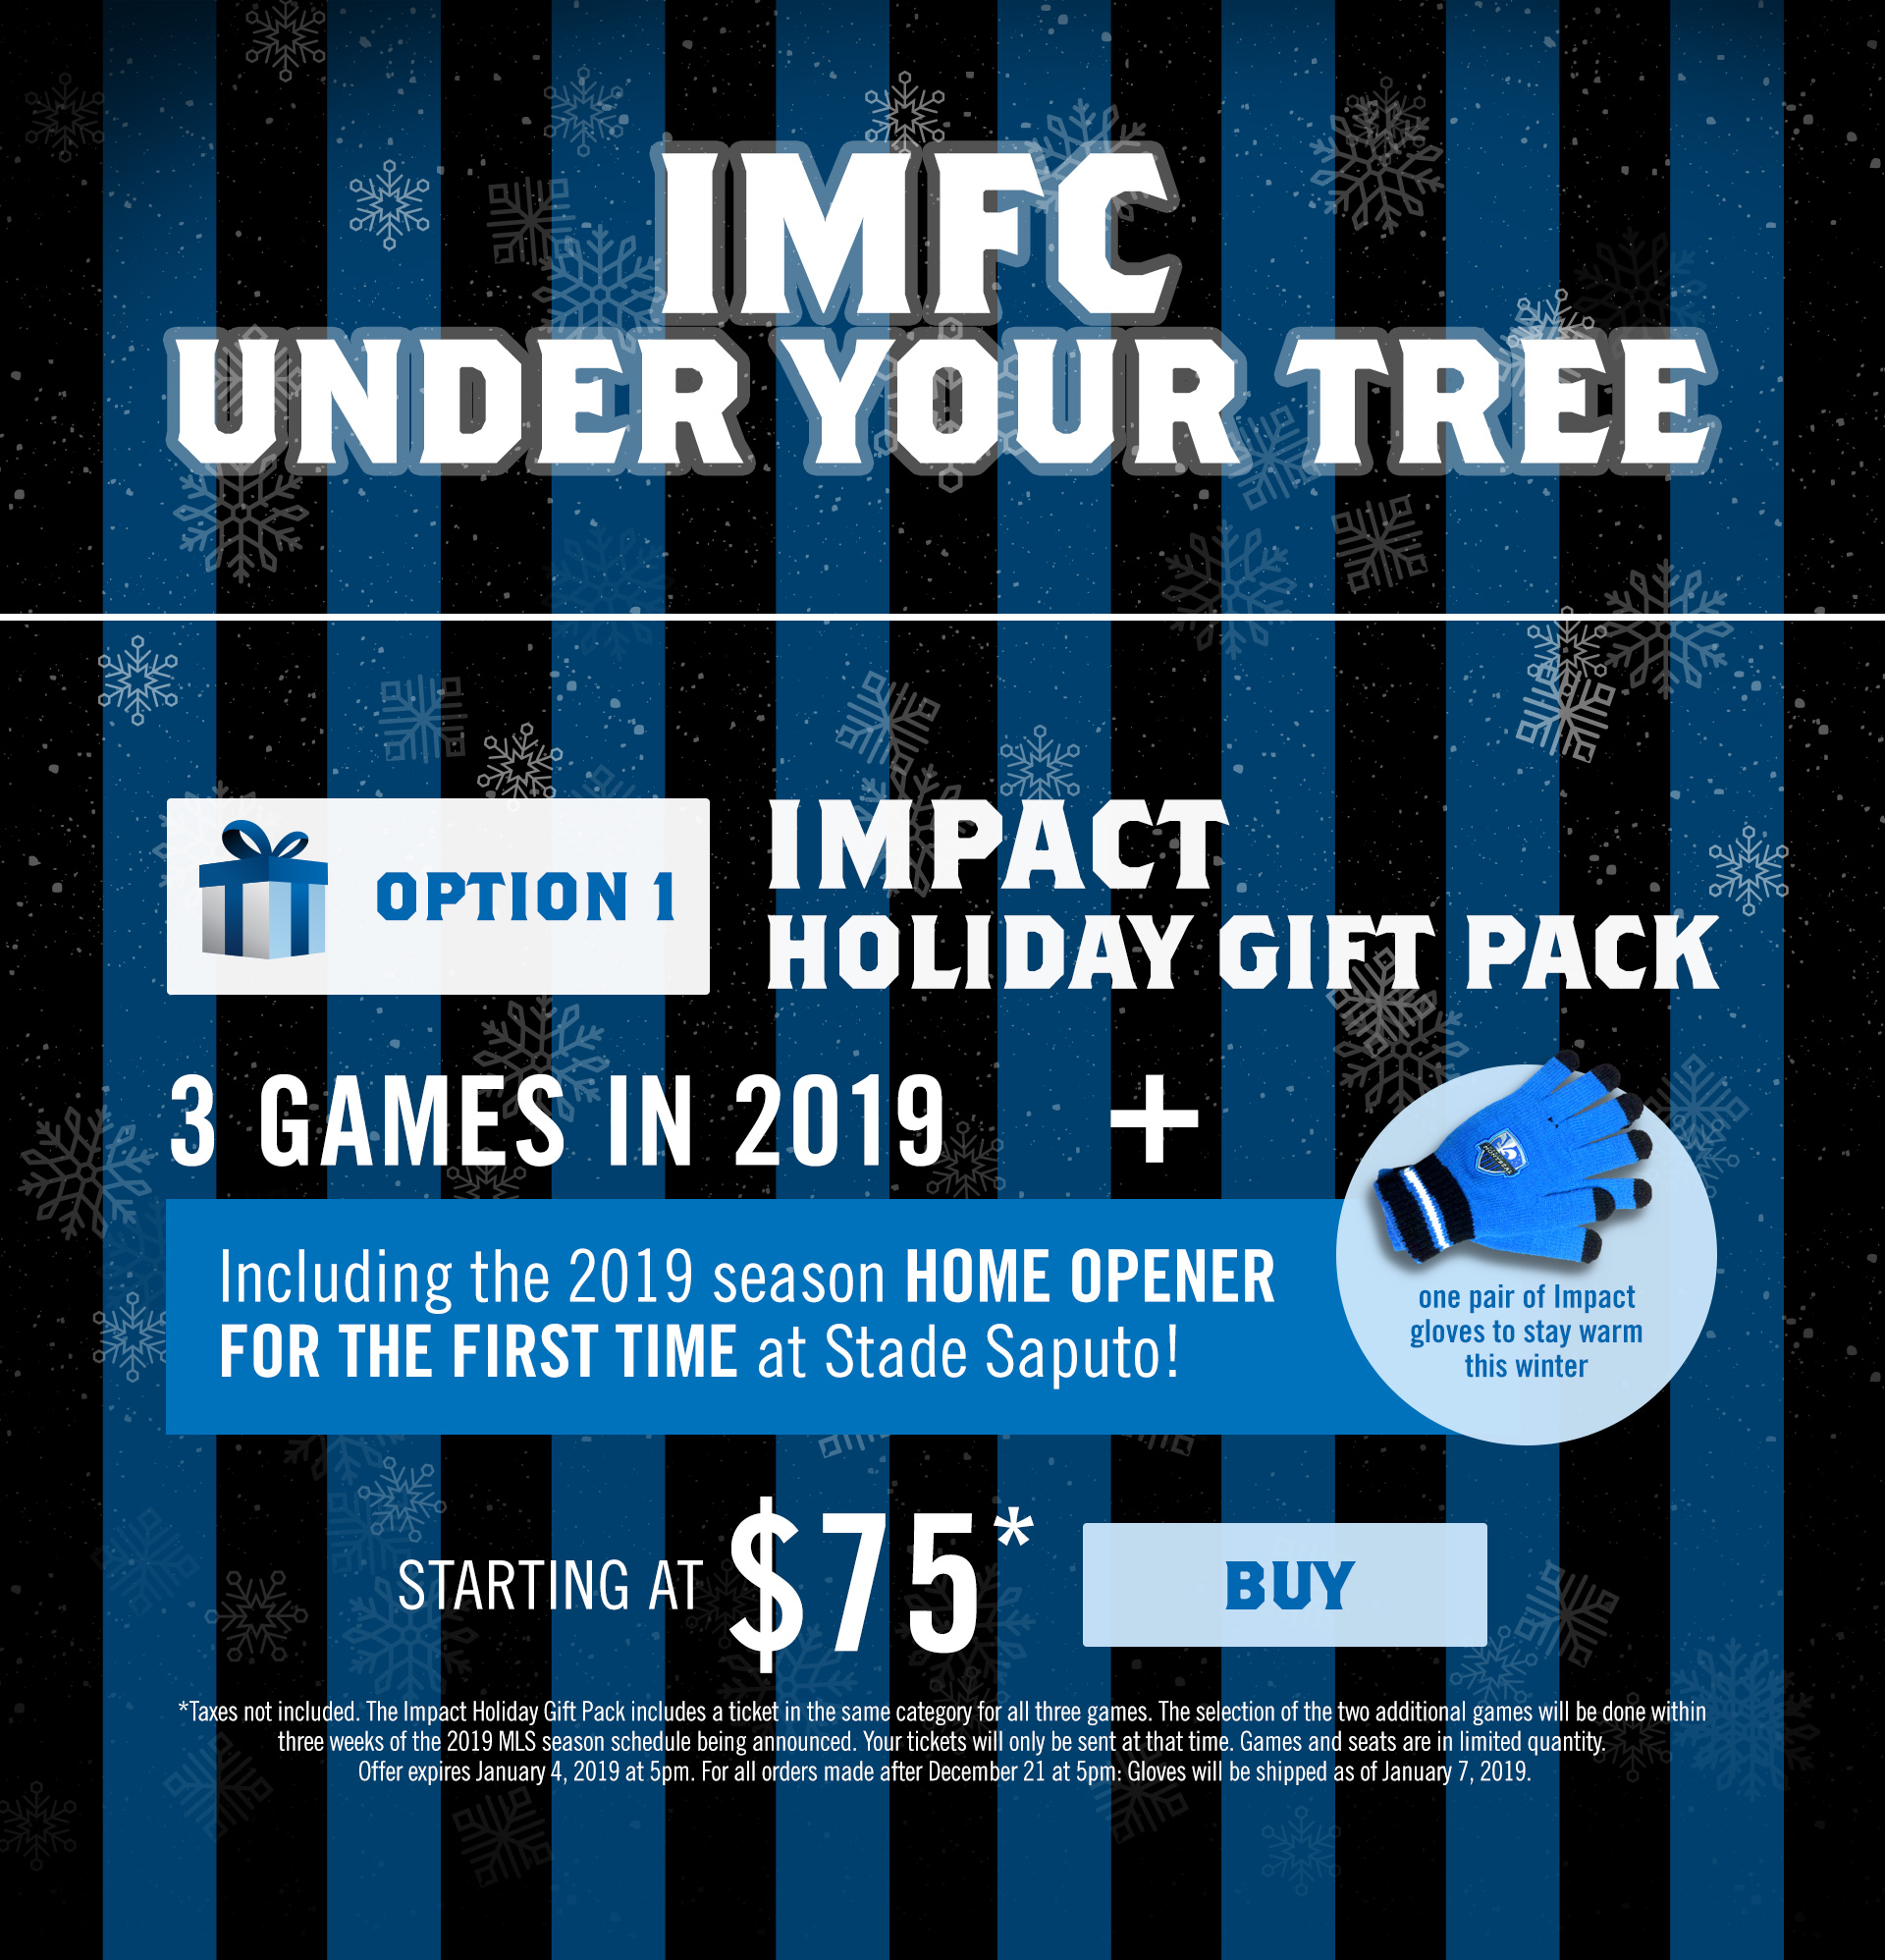 Impact Holiday packages option 1